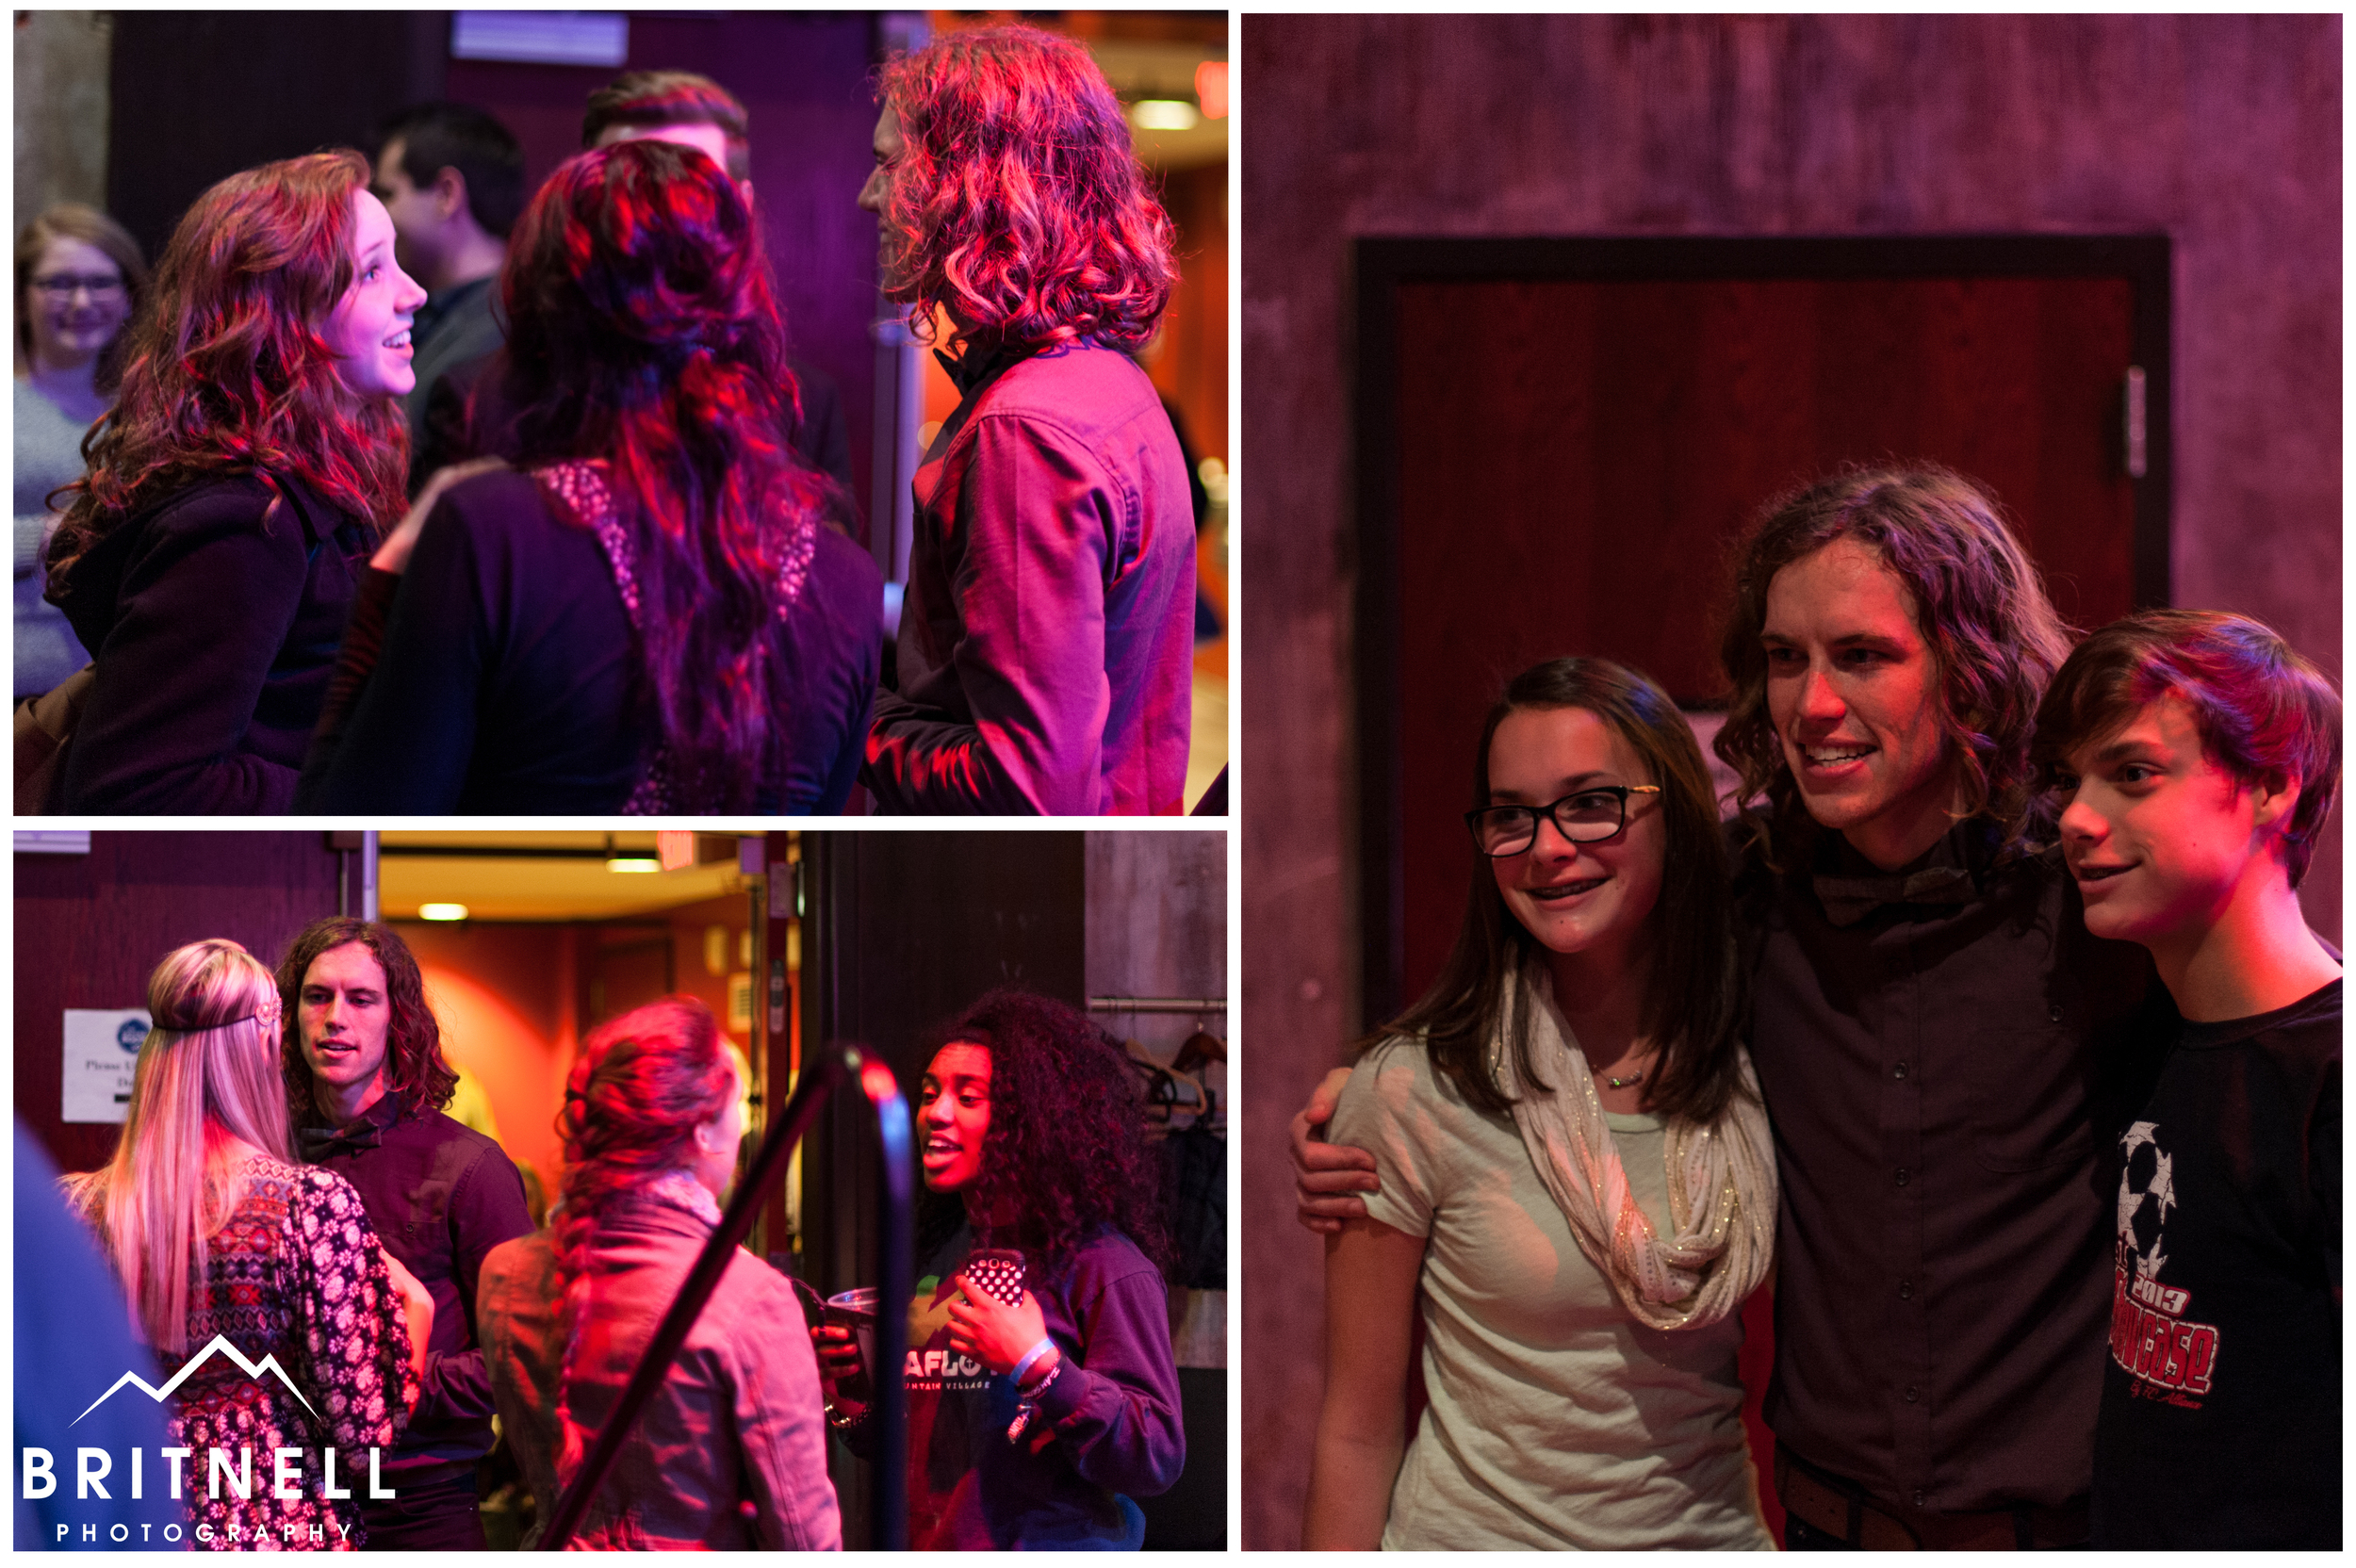 David had a great time greeting and taking pictures with fans after the show.